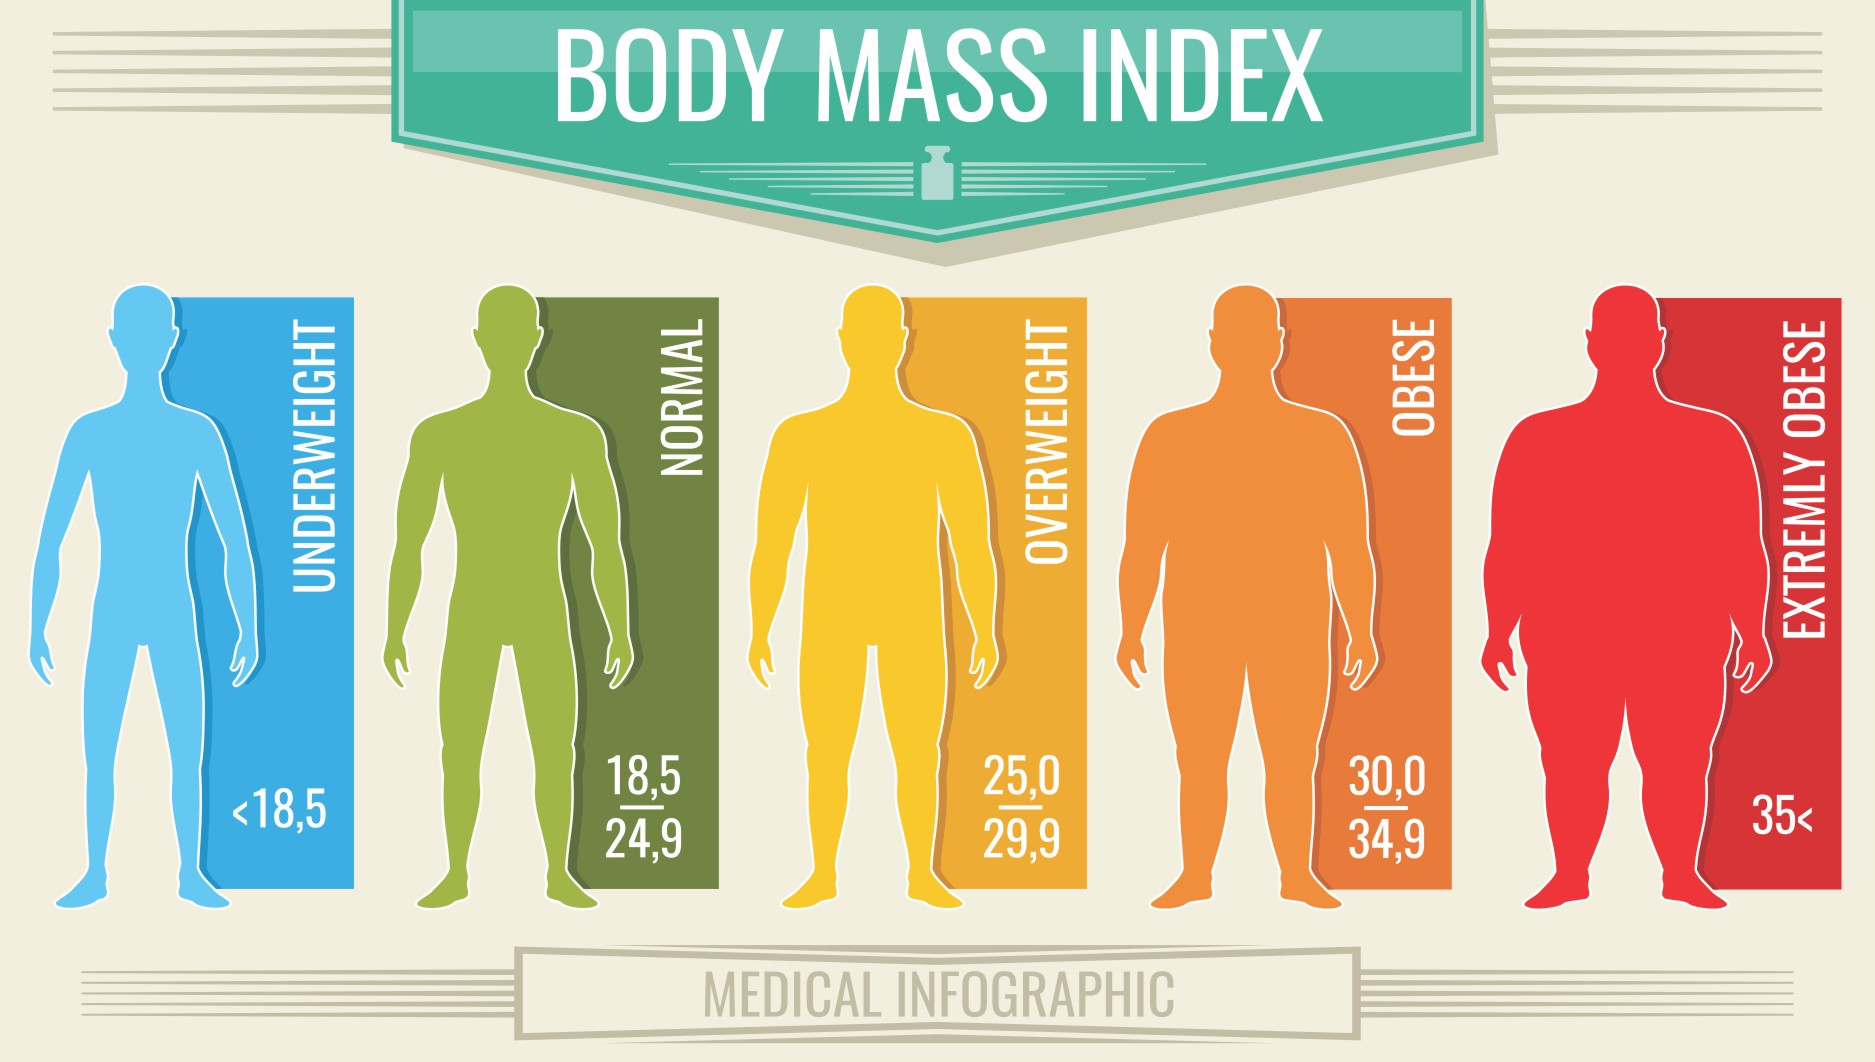 graphic of the various bmi categories, health, weight status, obesity